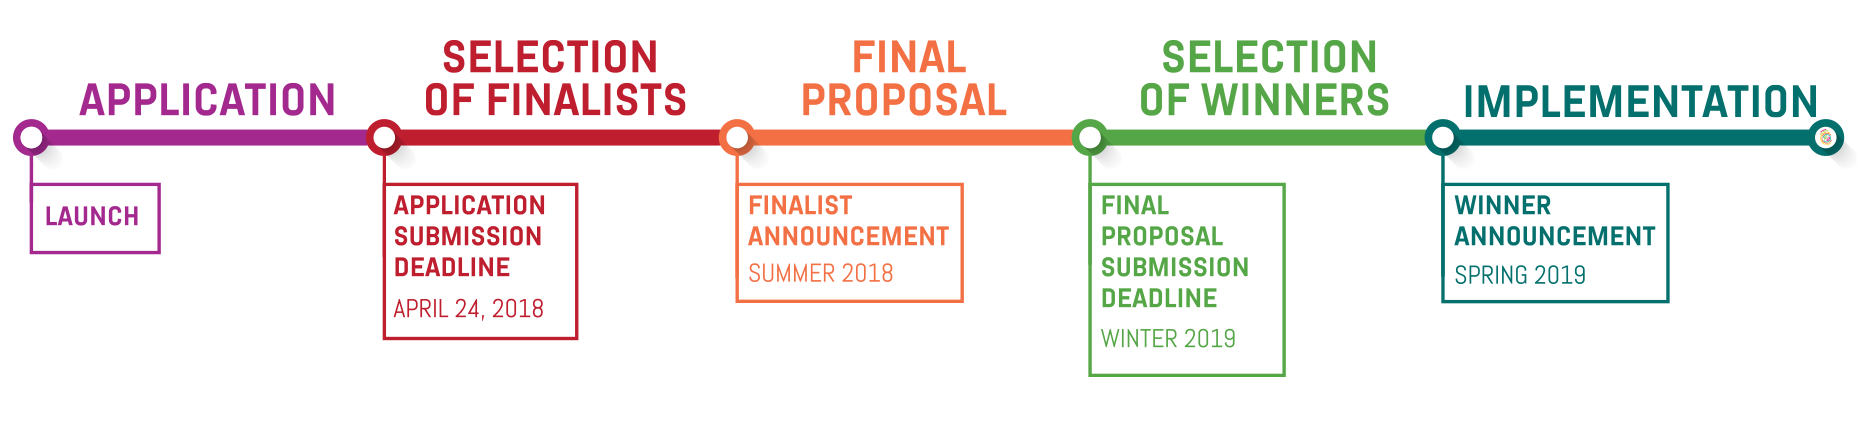 After launch, the application process begins. The application submission deadline is April 24, 2018. The finalists will be announced in Summer 2018. This will be followed by a period to develop final proposals. The final proposal submission deadline is Winter 2018-19. This will be followed by a period to select winners. The winners will be announced in Spring 2019. This will be followed by the implementation phase.